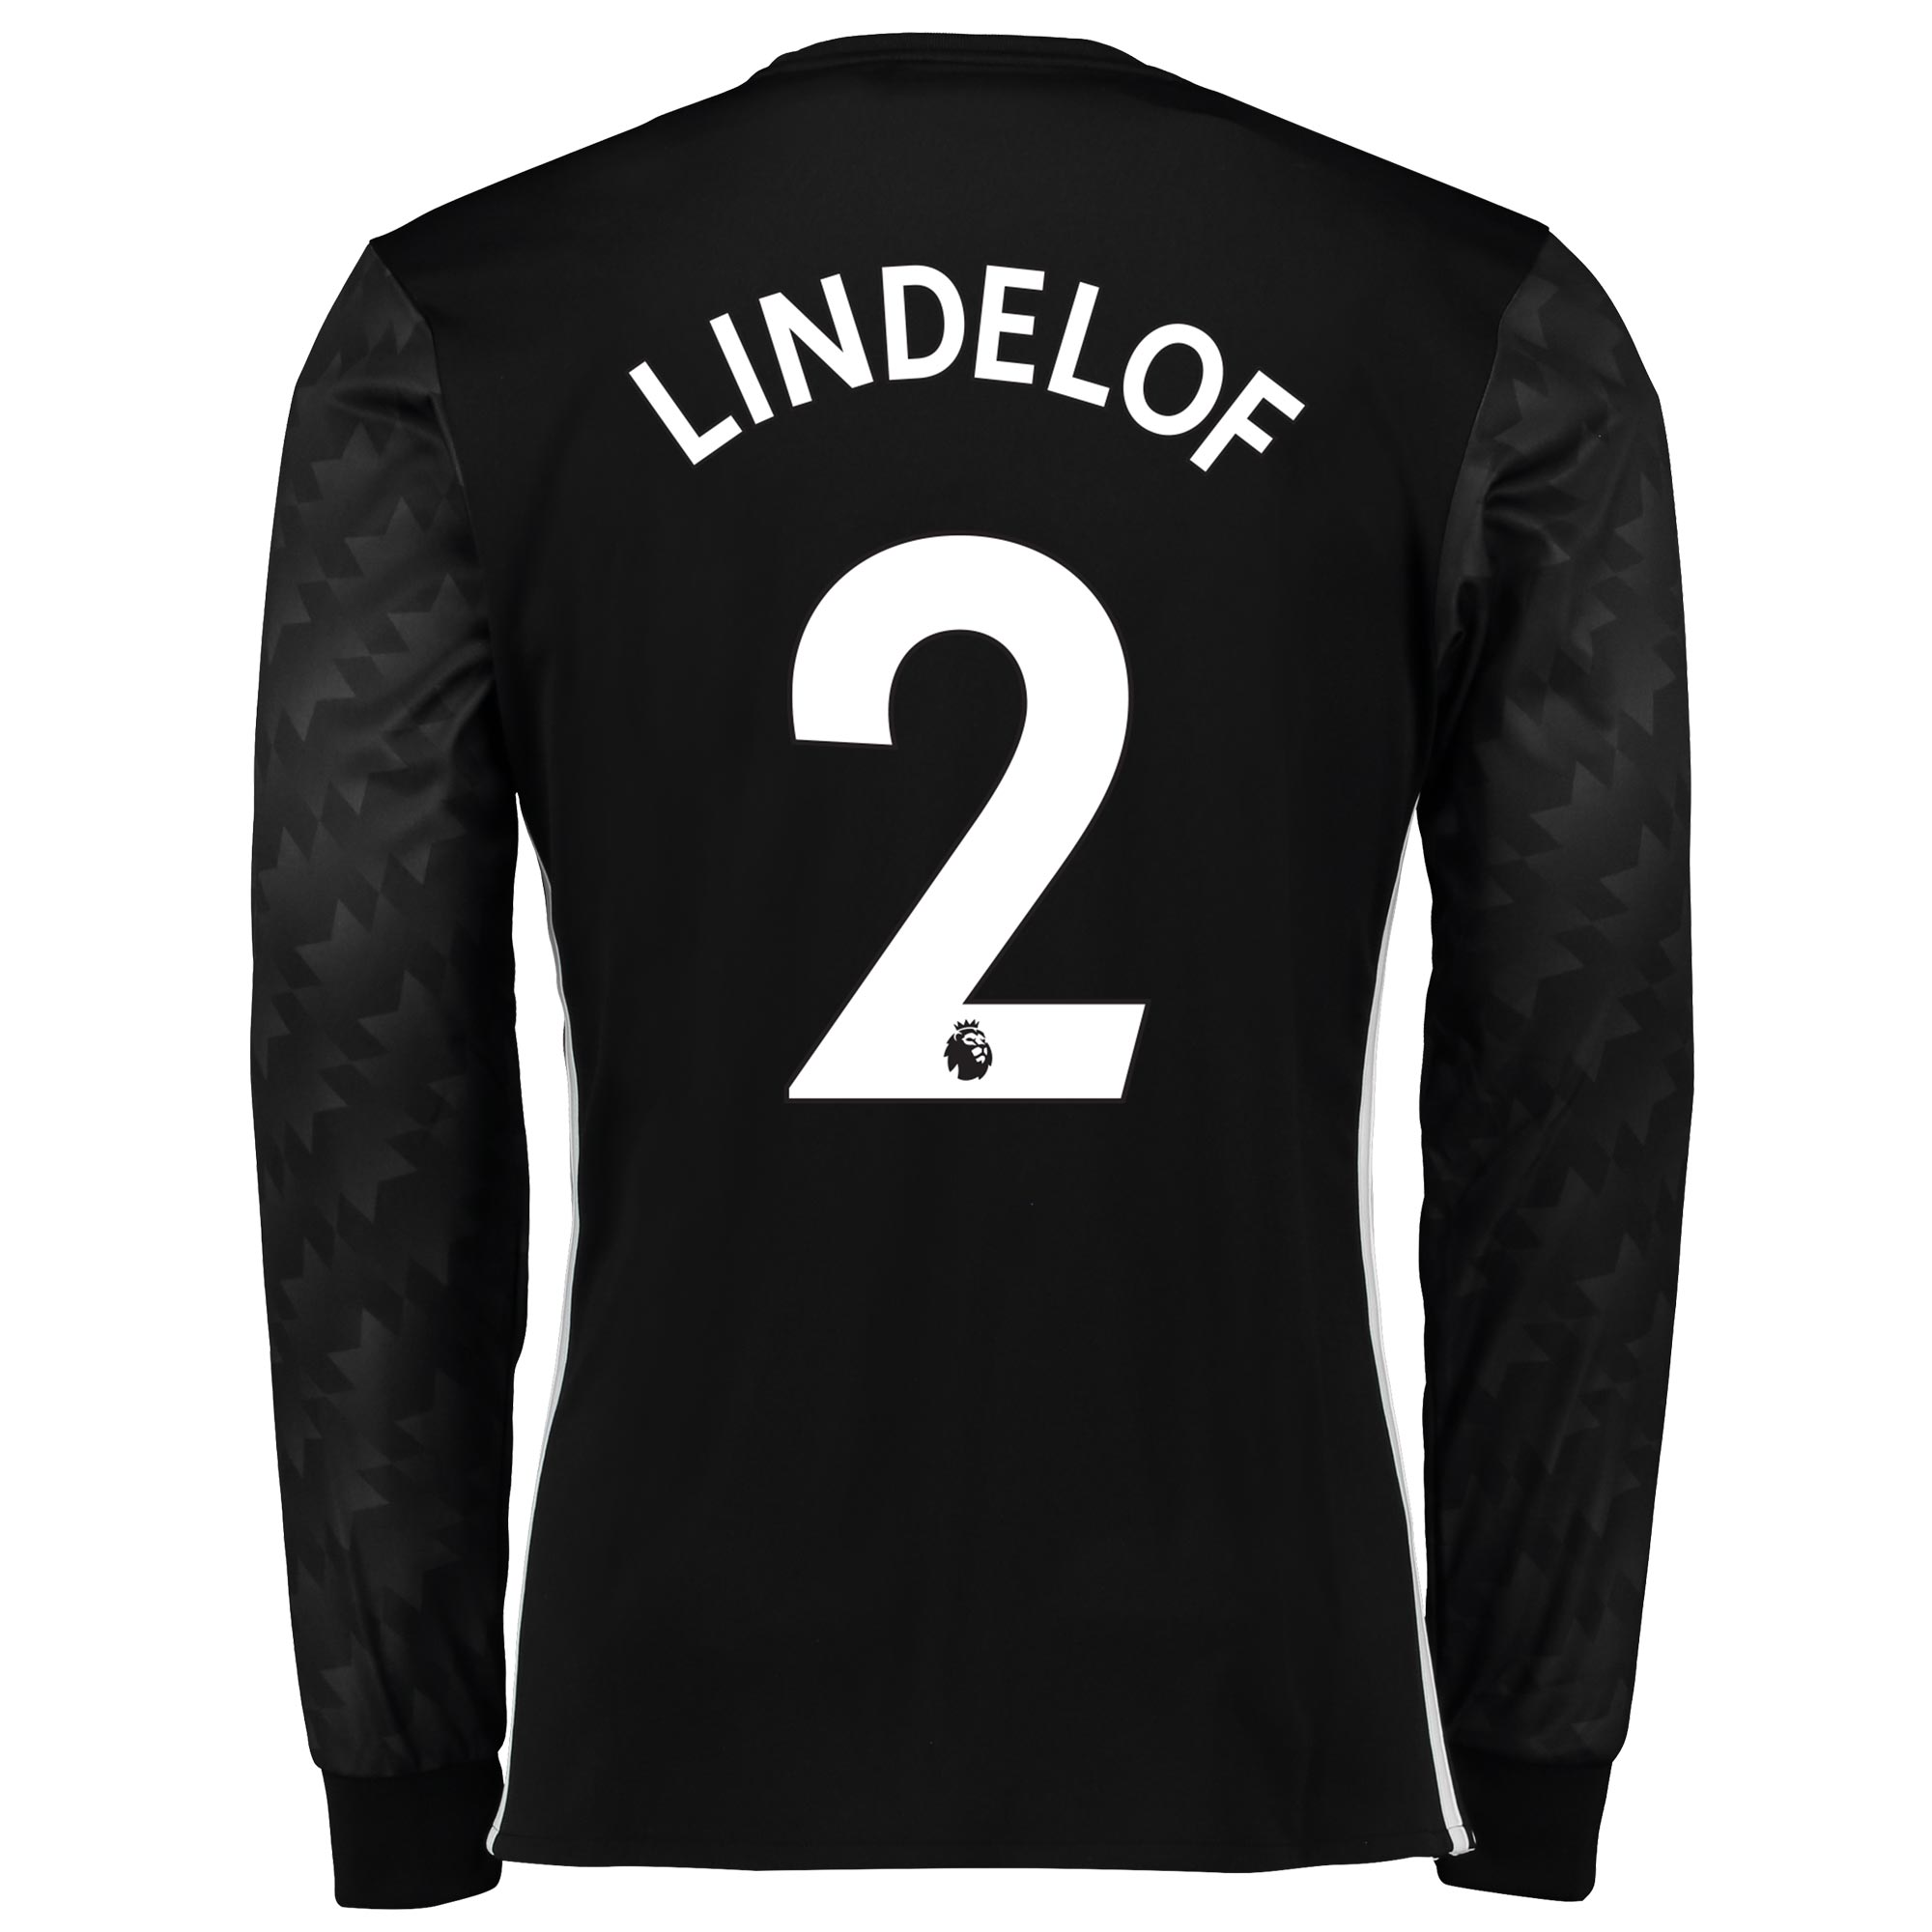 Manchester United Away Shirt 2017-18 - Long Sleeve with Lindelof TBC p